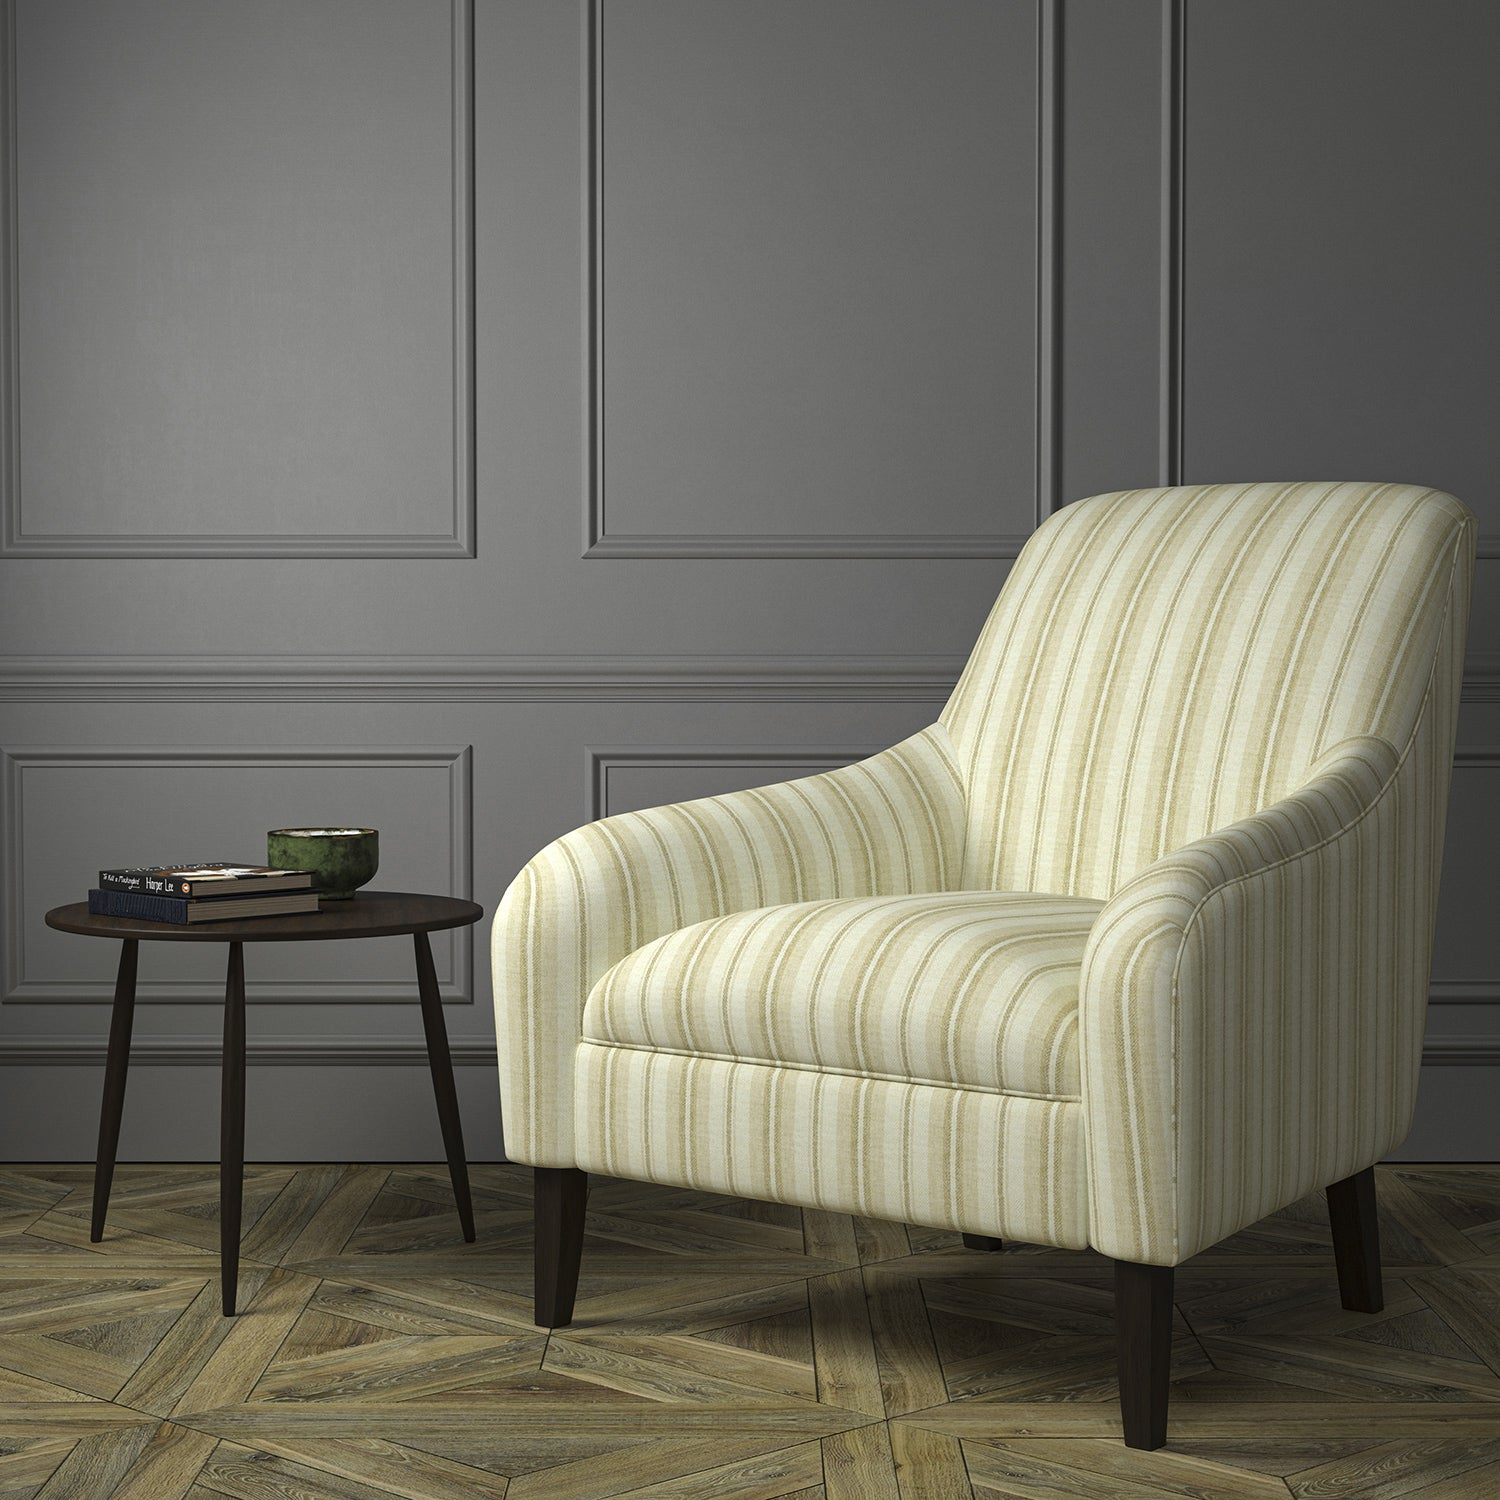 Chair upholstered in a luxury Scottish cute wool striped upholstery fabric